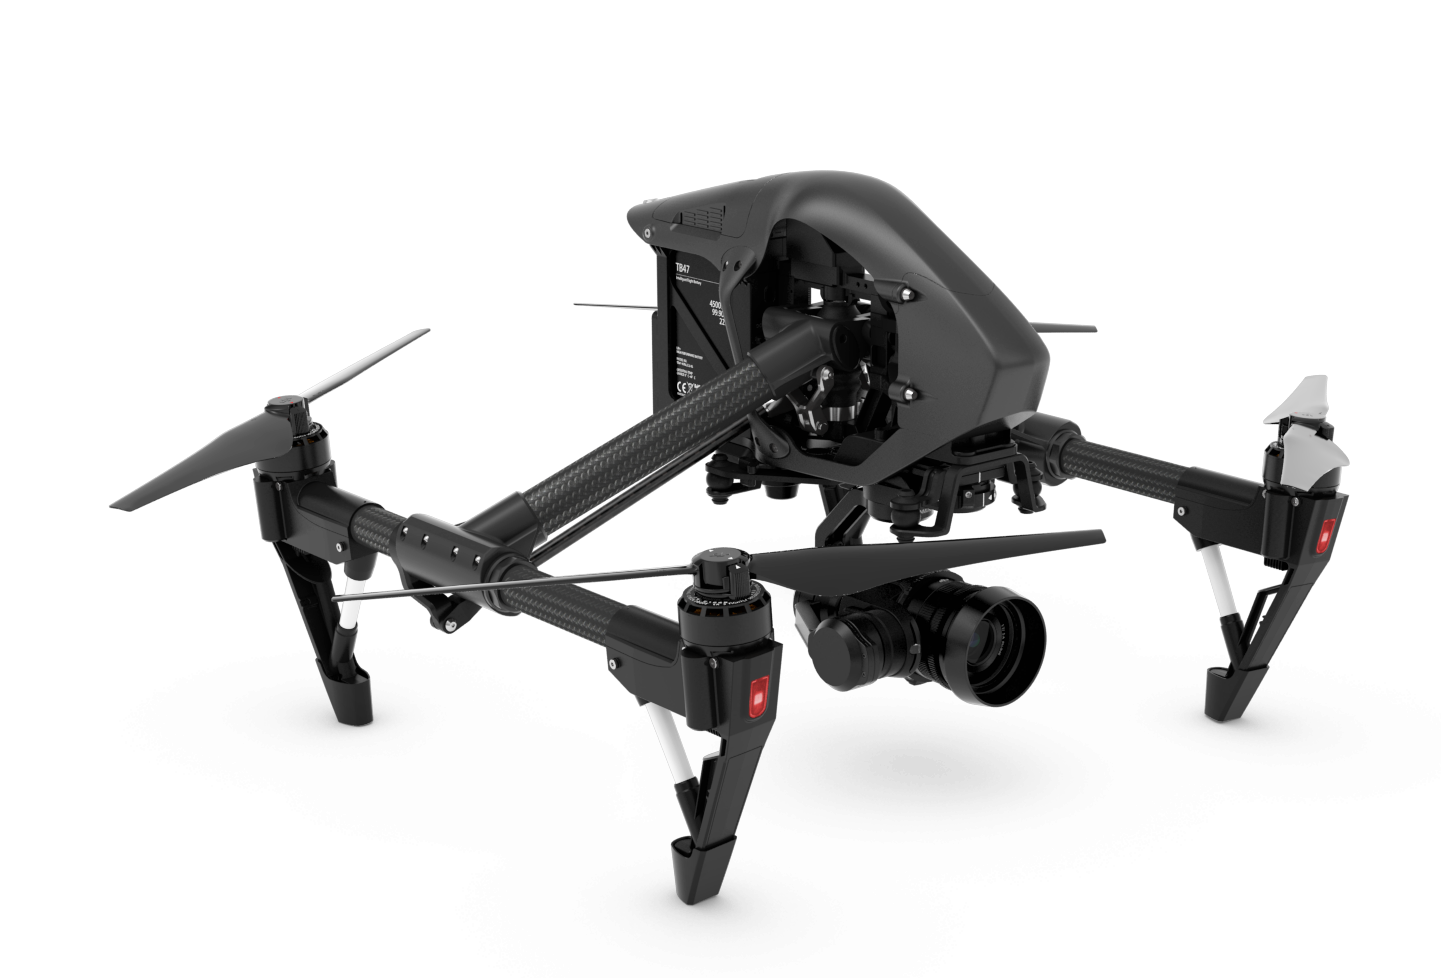 commercial drone news with Dji Introduces Phantom 3 4k And Inspire 1 Pro Black Edition 1772 on Stock Video 6436527 Business Background together with Diydrones as well Drone Will Deliver Food Within Minutes Home as well Flirs New Drone Camera Offers Thermal Imaging 4k Video in addition Dji Introduces Phantom 3 4k And Inspire 1 Pro Black Edition 1772.